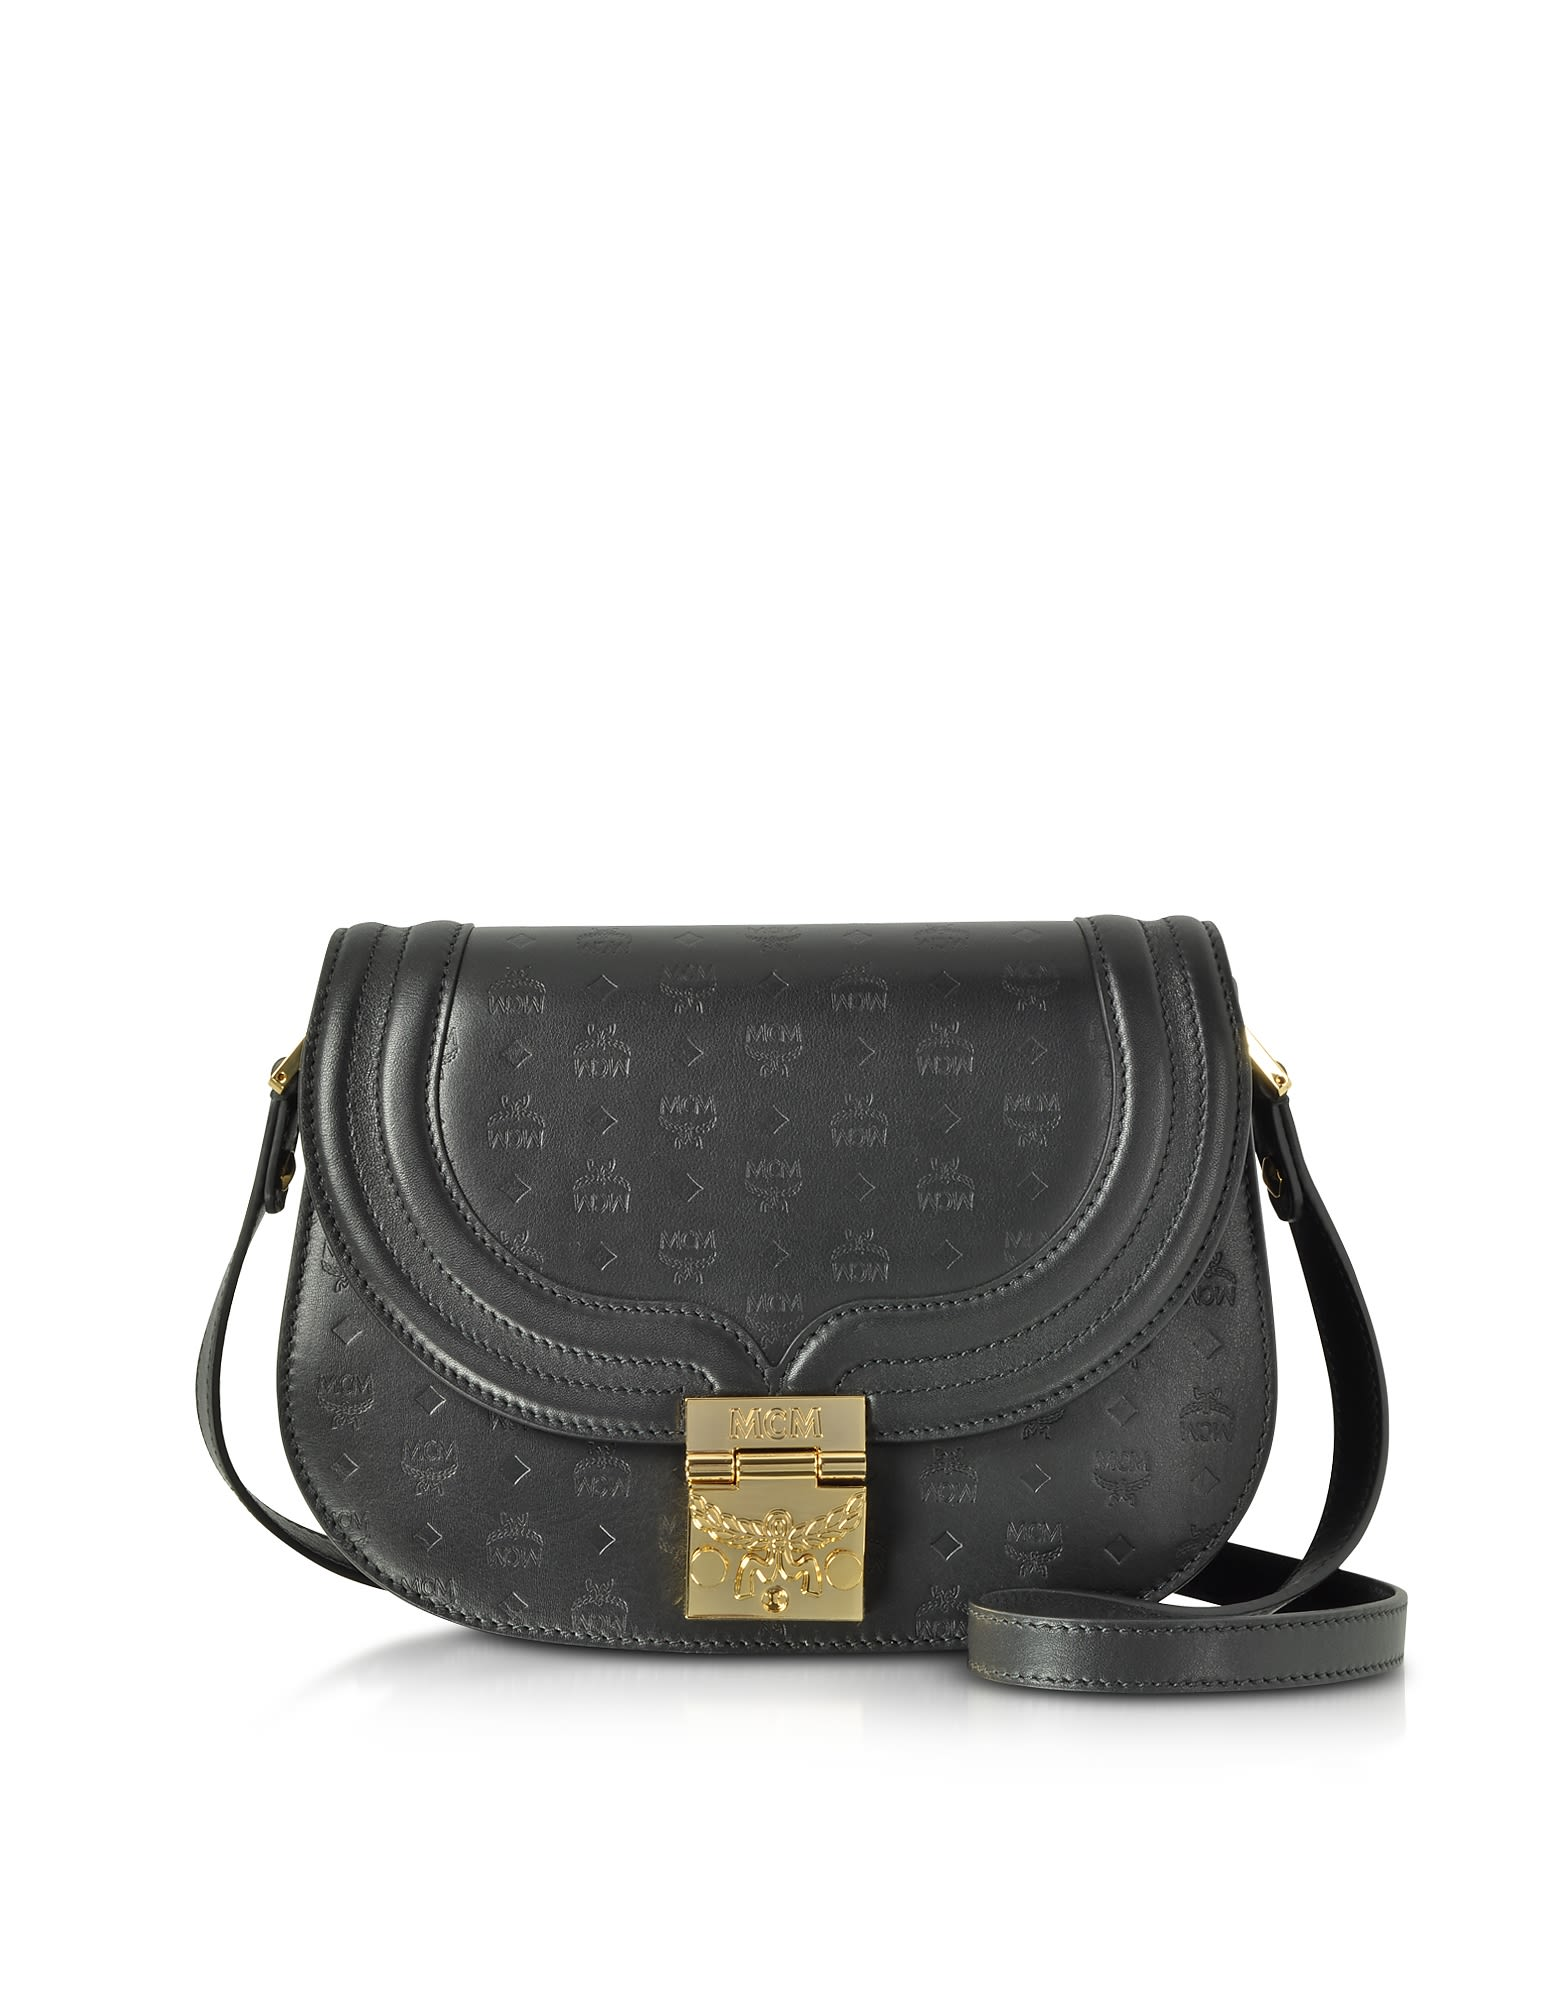 2e7db786f9 MCM Mcm Trisha Black Monogrammed Leather Small Shoulder Bag - Black ...